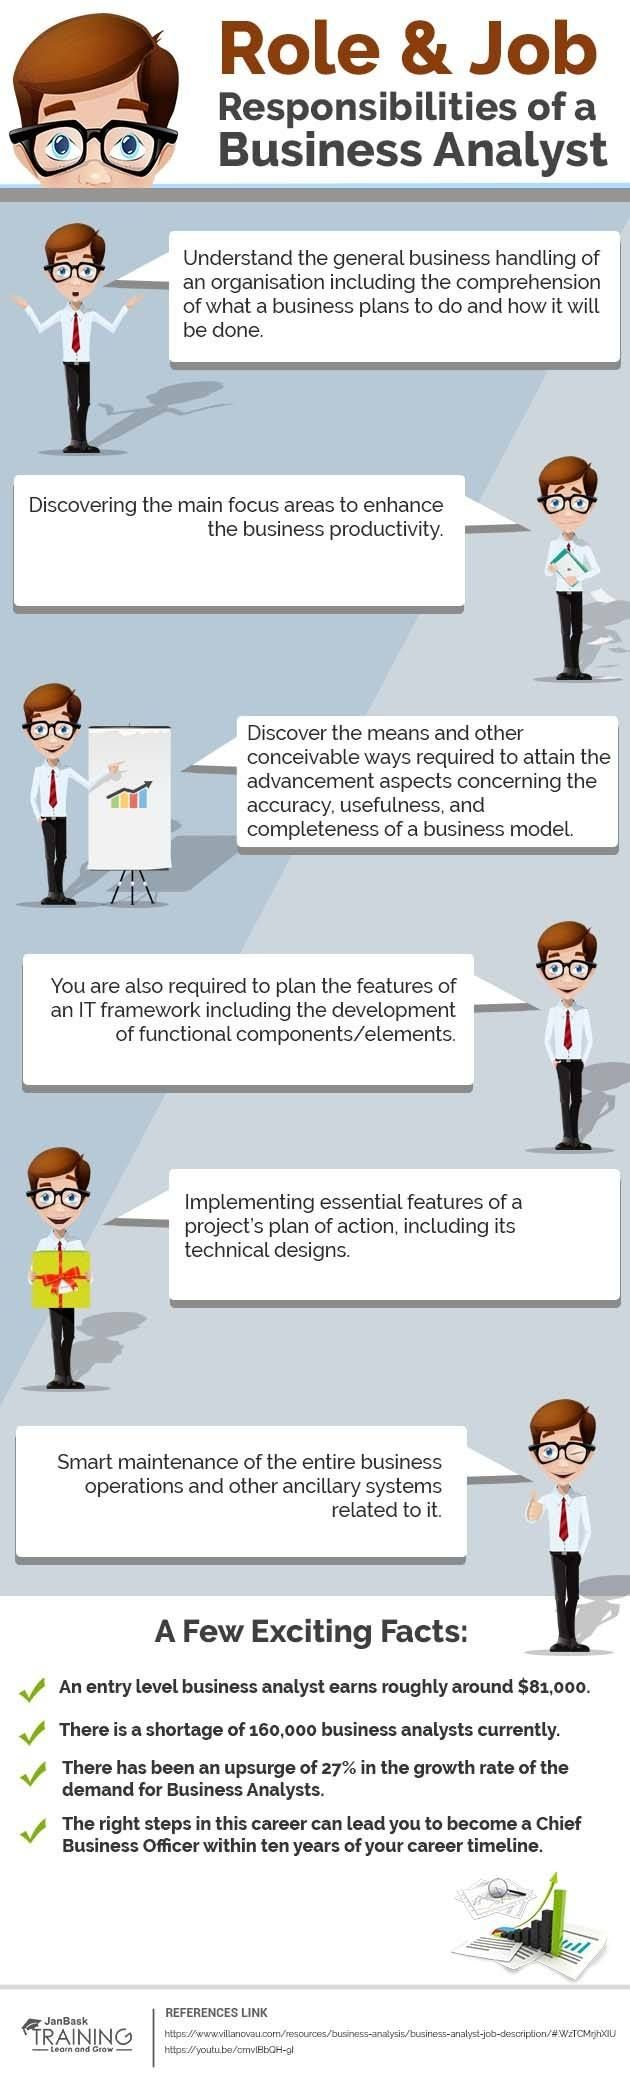 What Are The Role And Job Responsibilities Of A Business Analyst Infographic E Learning Infographics Business Analyst Business Analysis Analyst